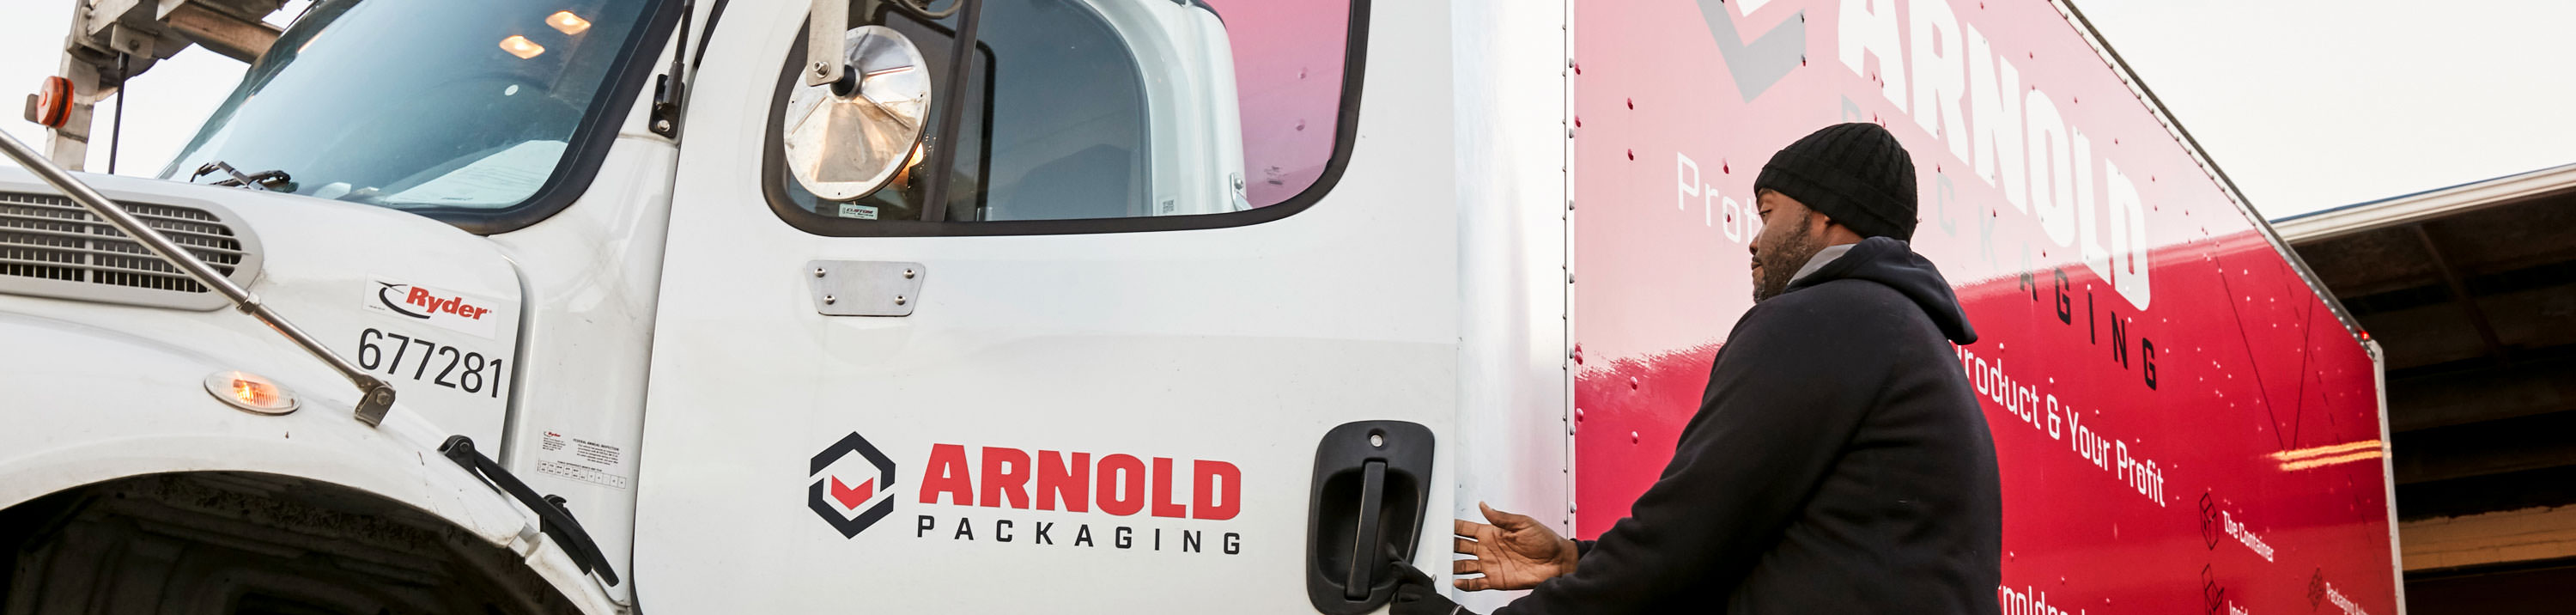 Arnold Packaging - Benefits & Perks